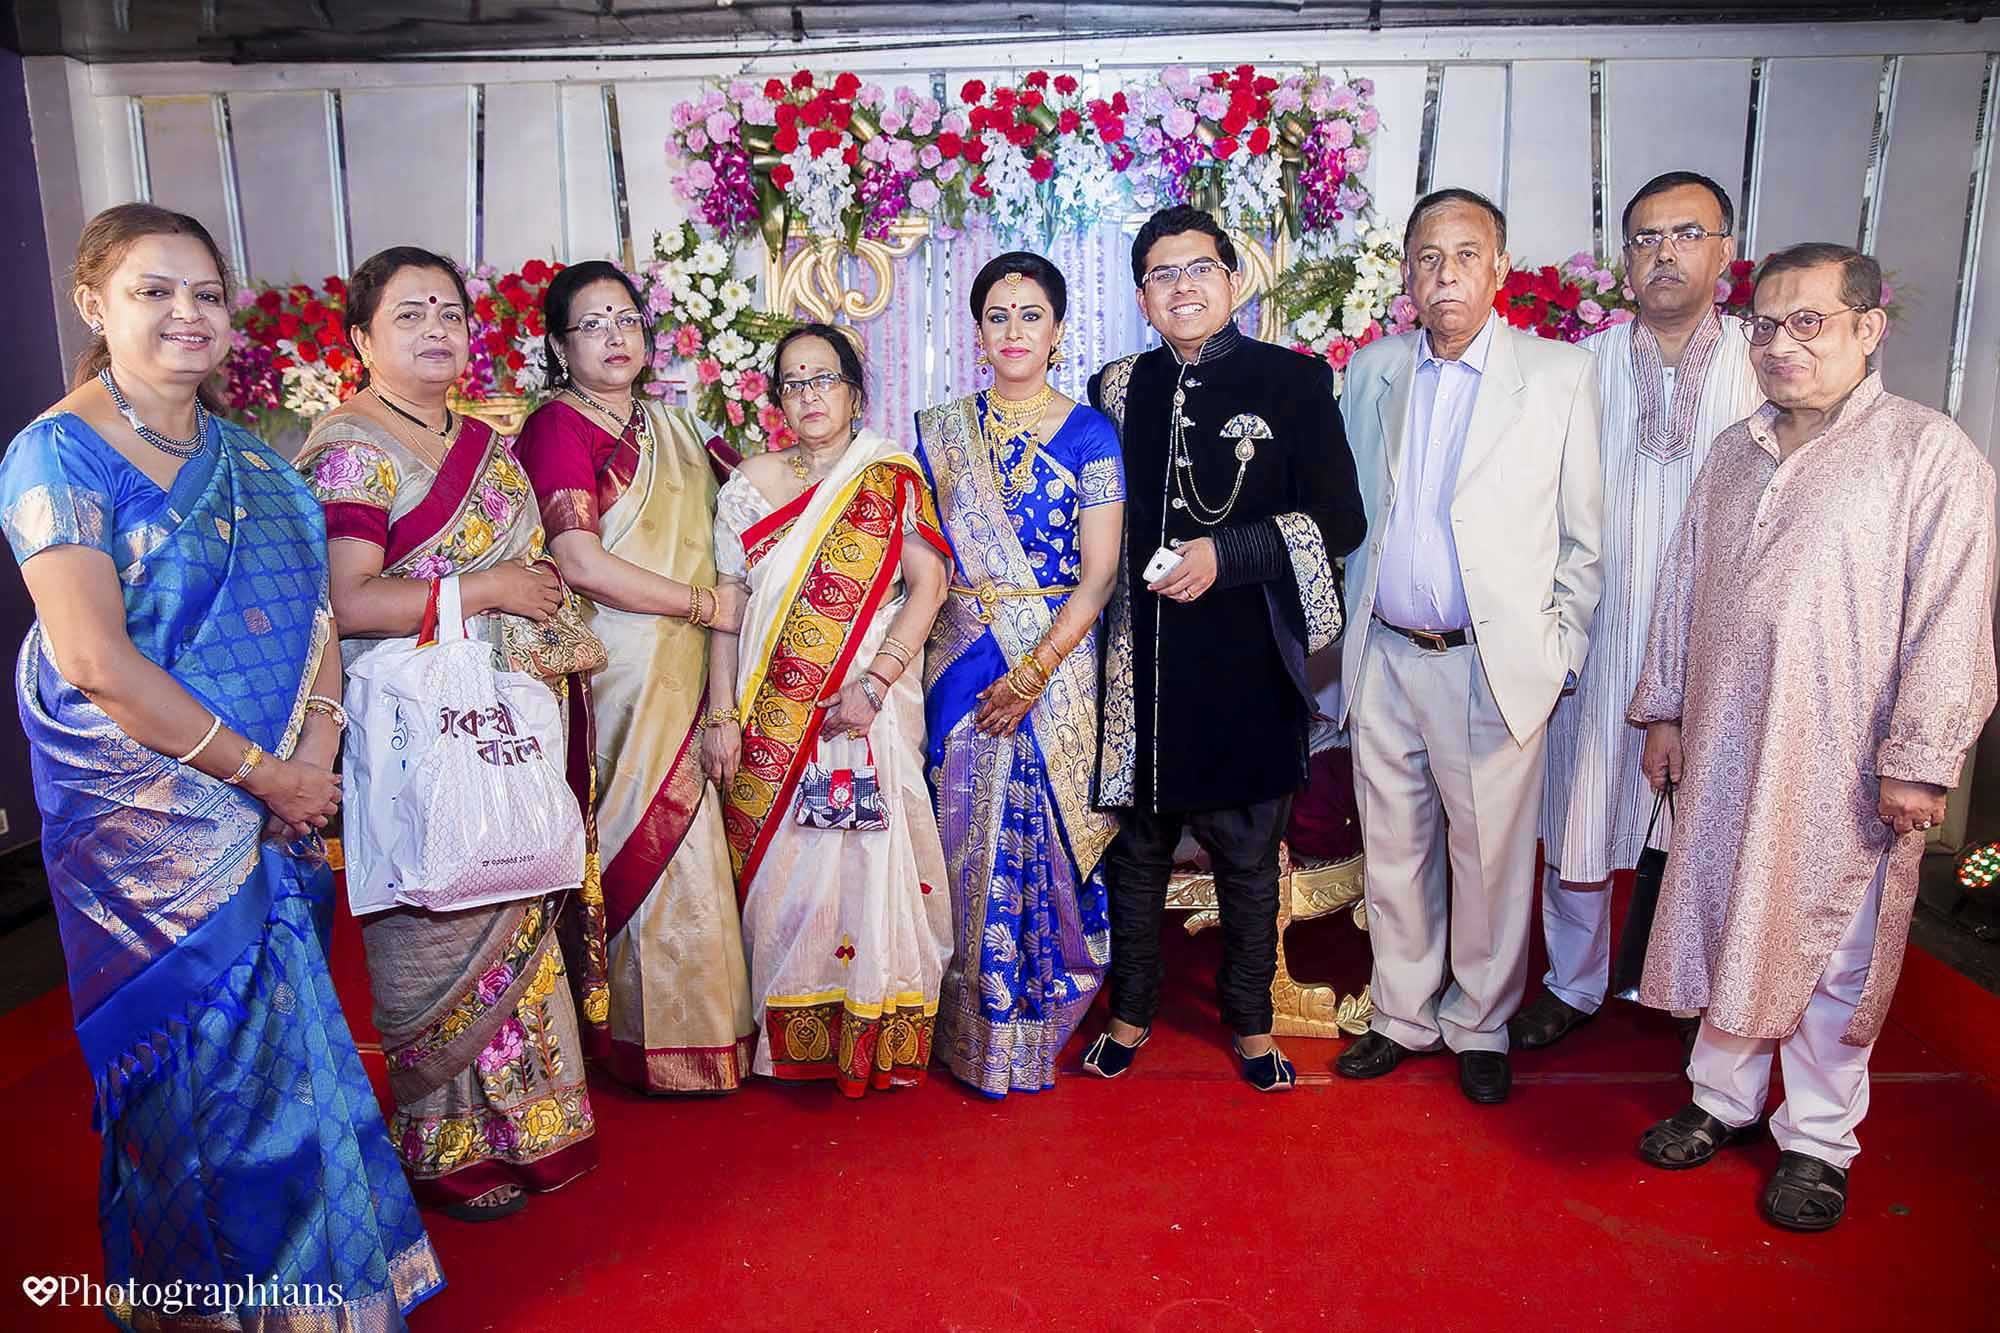 Bengali_Wedding_Photography_Kolkata_Photographians_184